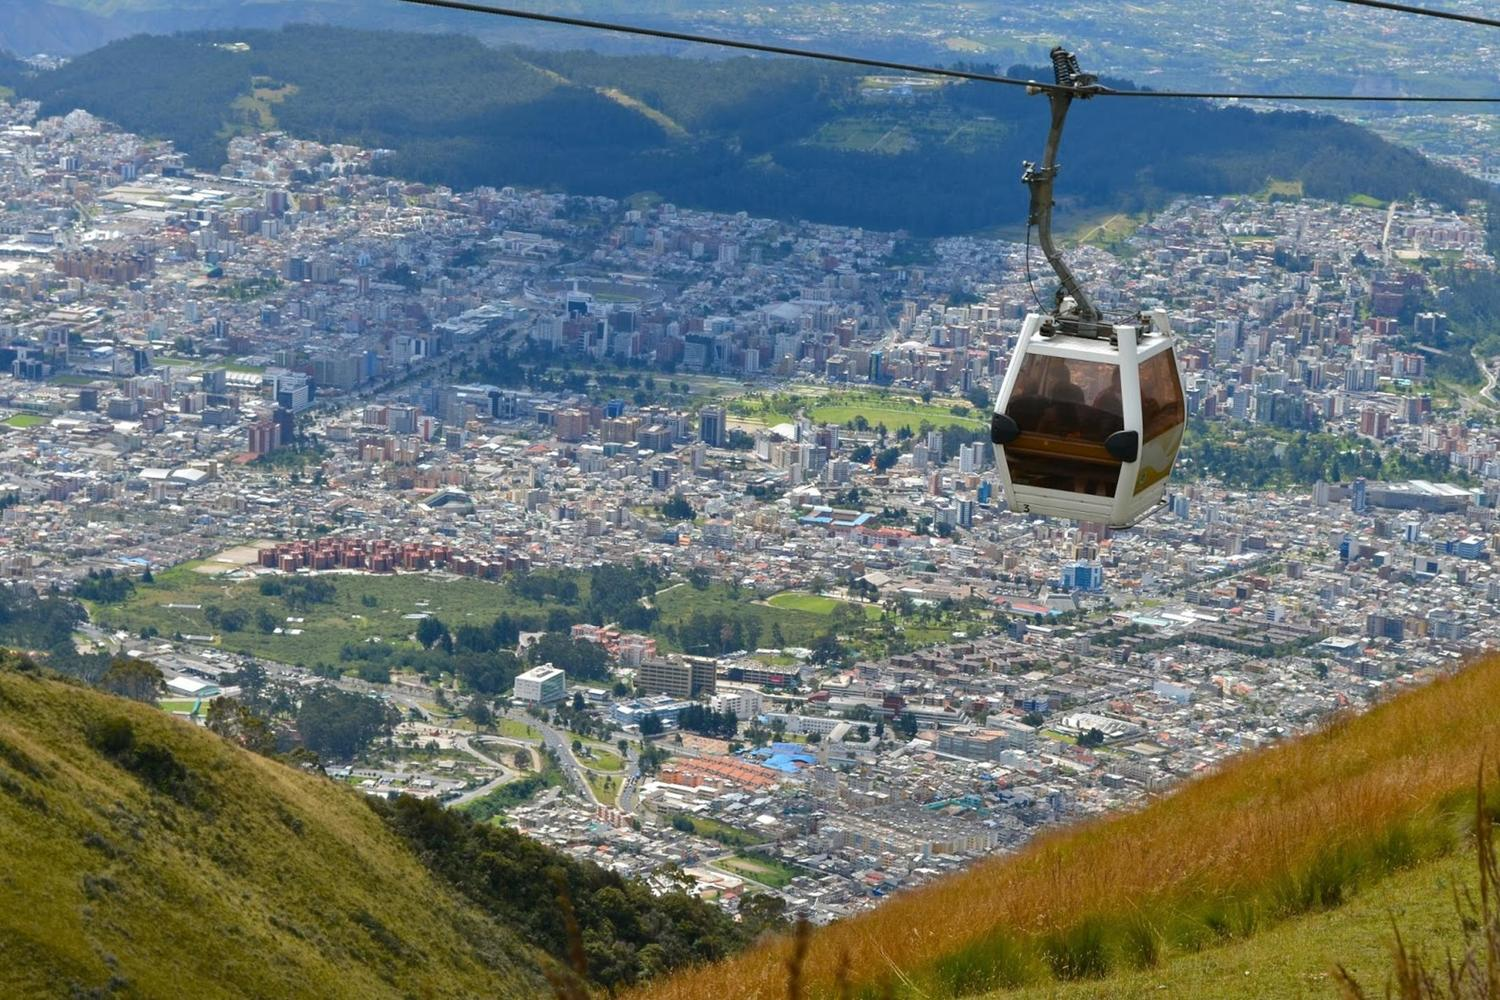 Quito's teleferico takes you high up above the city